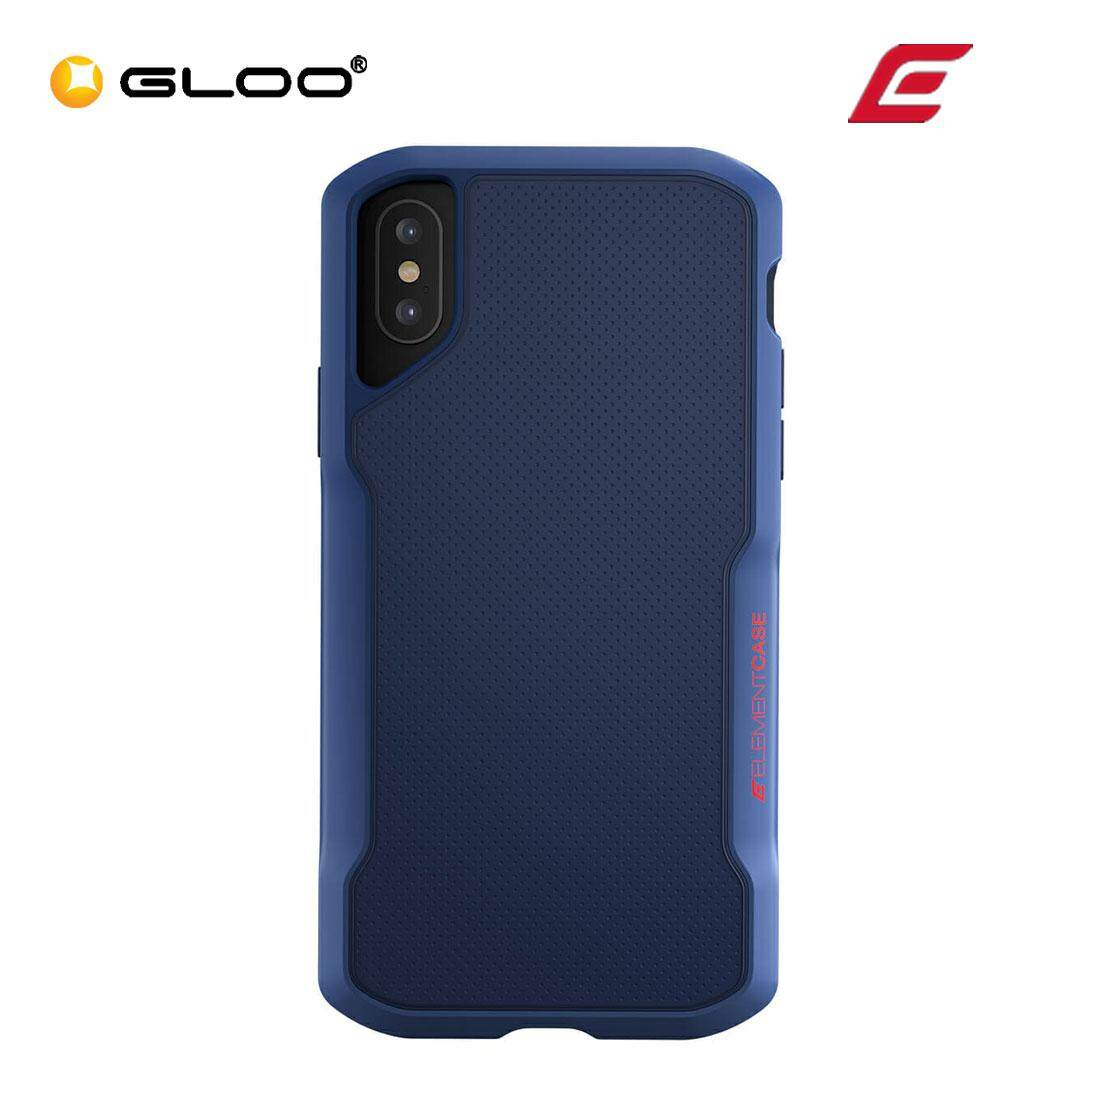 Element Case - Shadow (Xs Max) - Black/Blue/Green